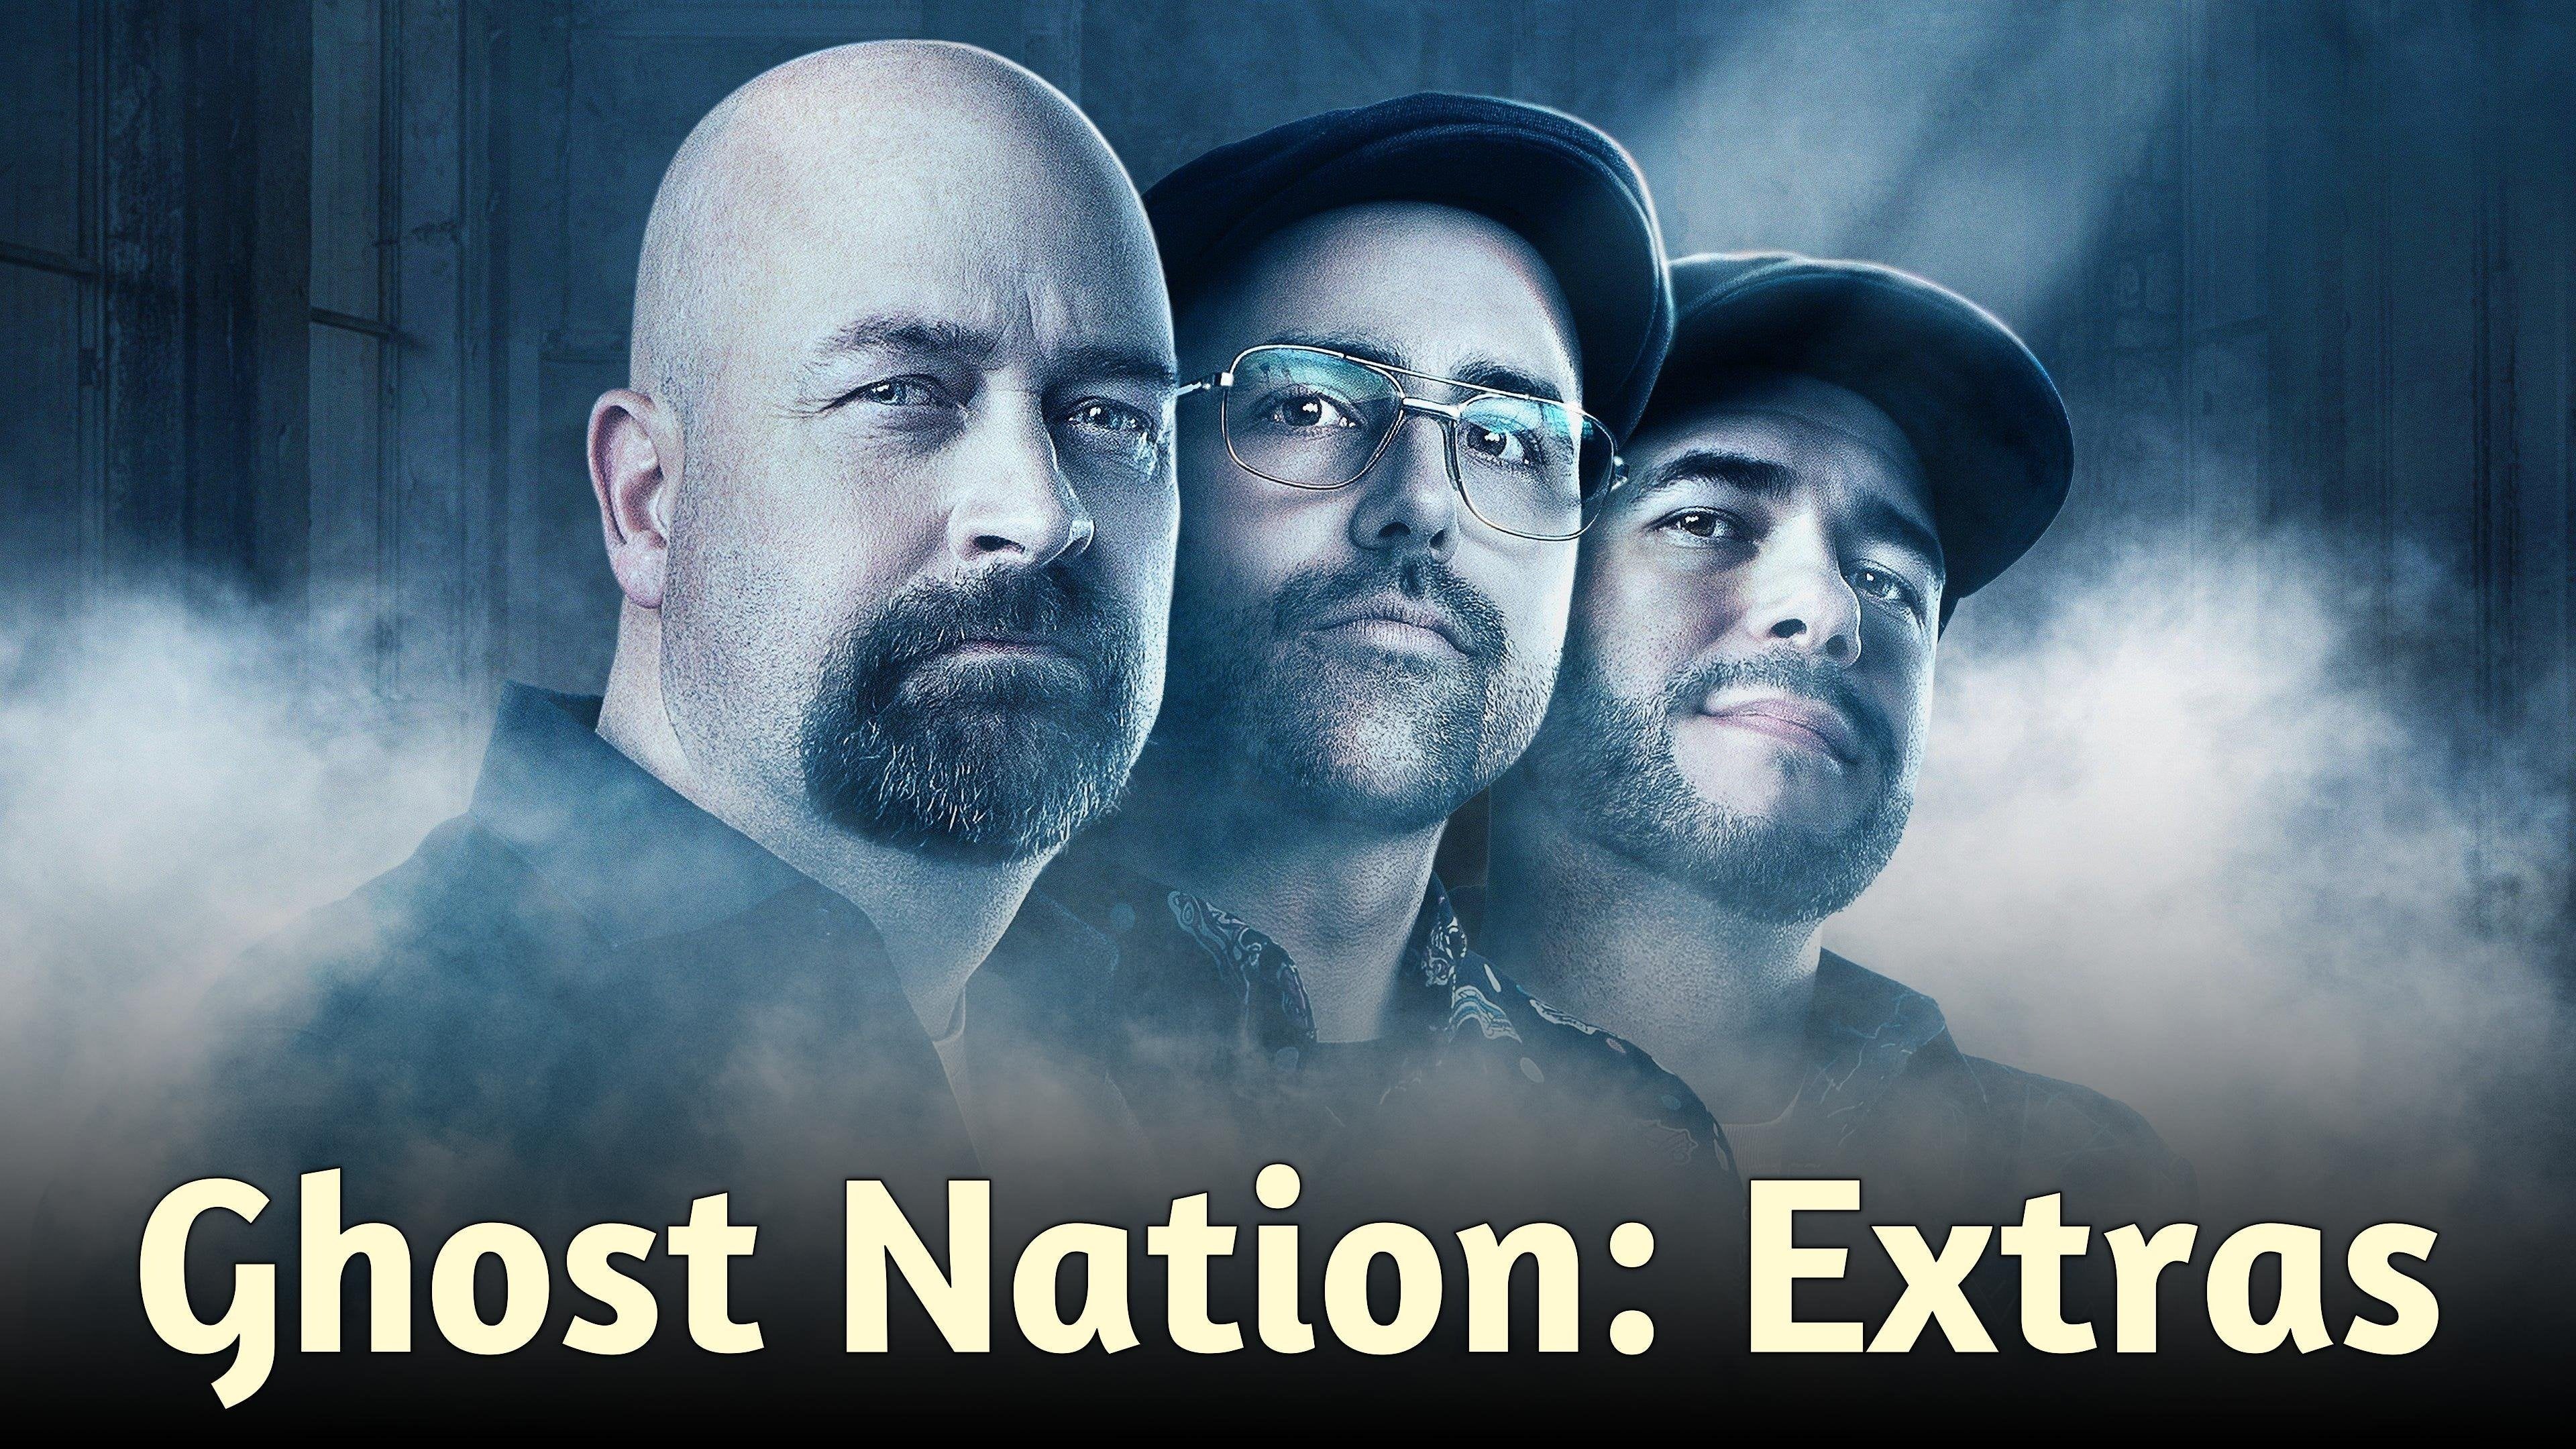 Ghost Nation: Extras